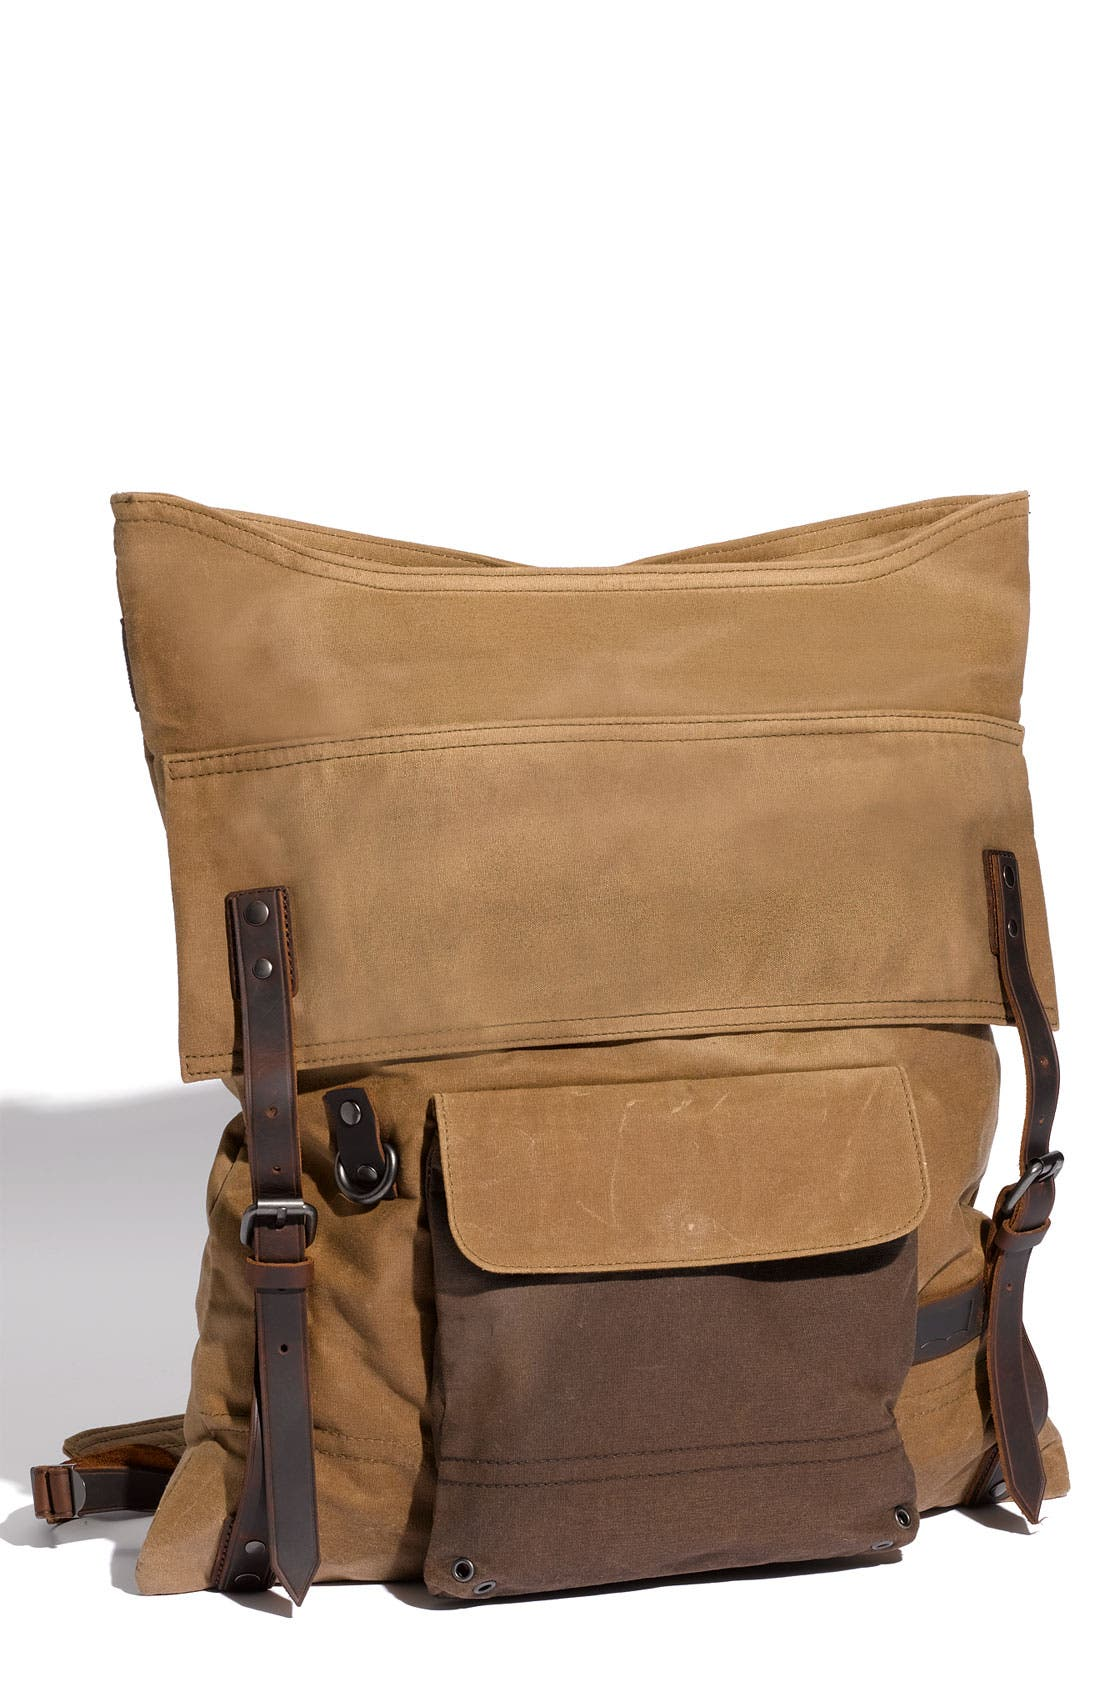 Alternate Image 1 Selected - Levi's 'River Rock' Backpack